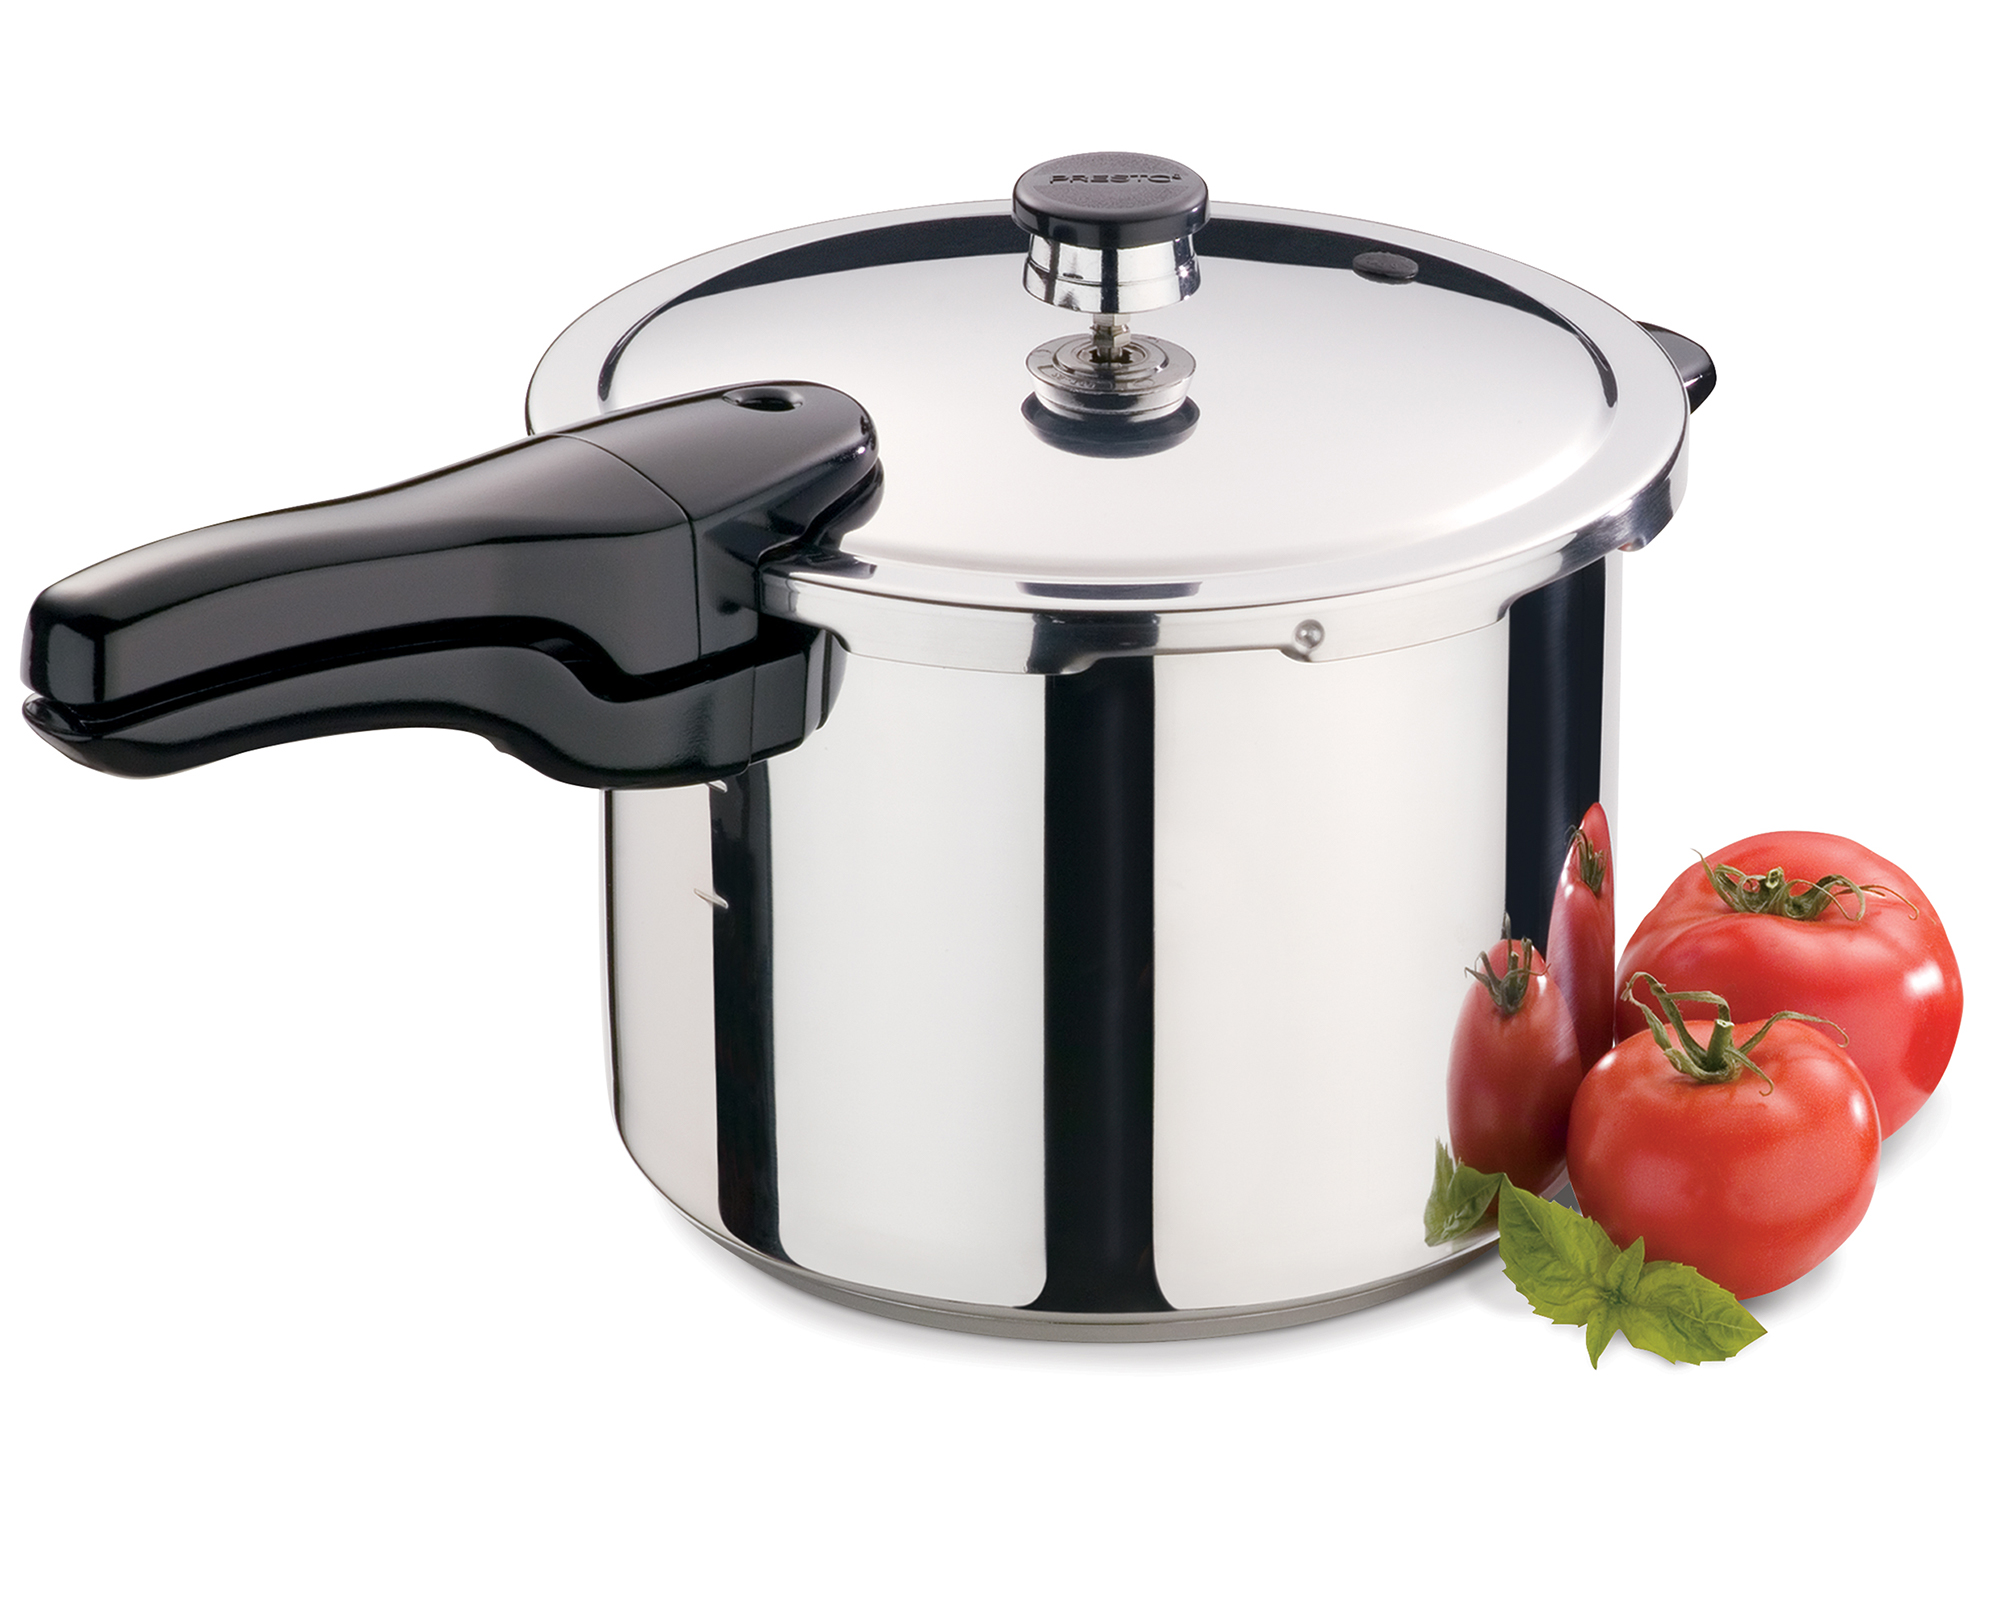 6 quart stainless steel pressure cooker pressure cookers presto. Black Bedroom Furniture Sets. Home Design Ideas